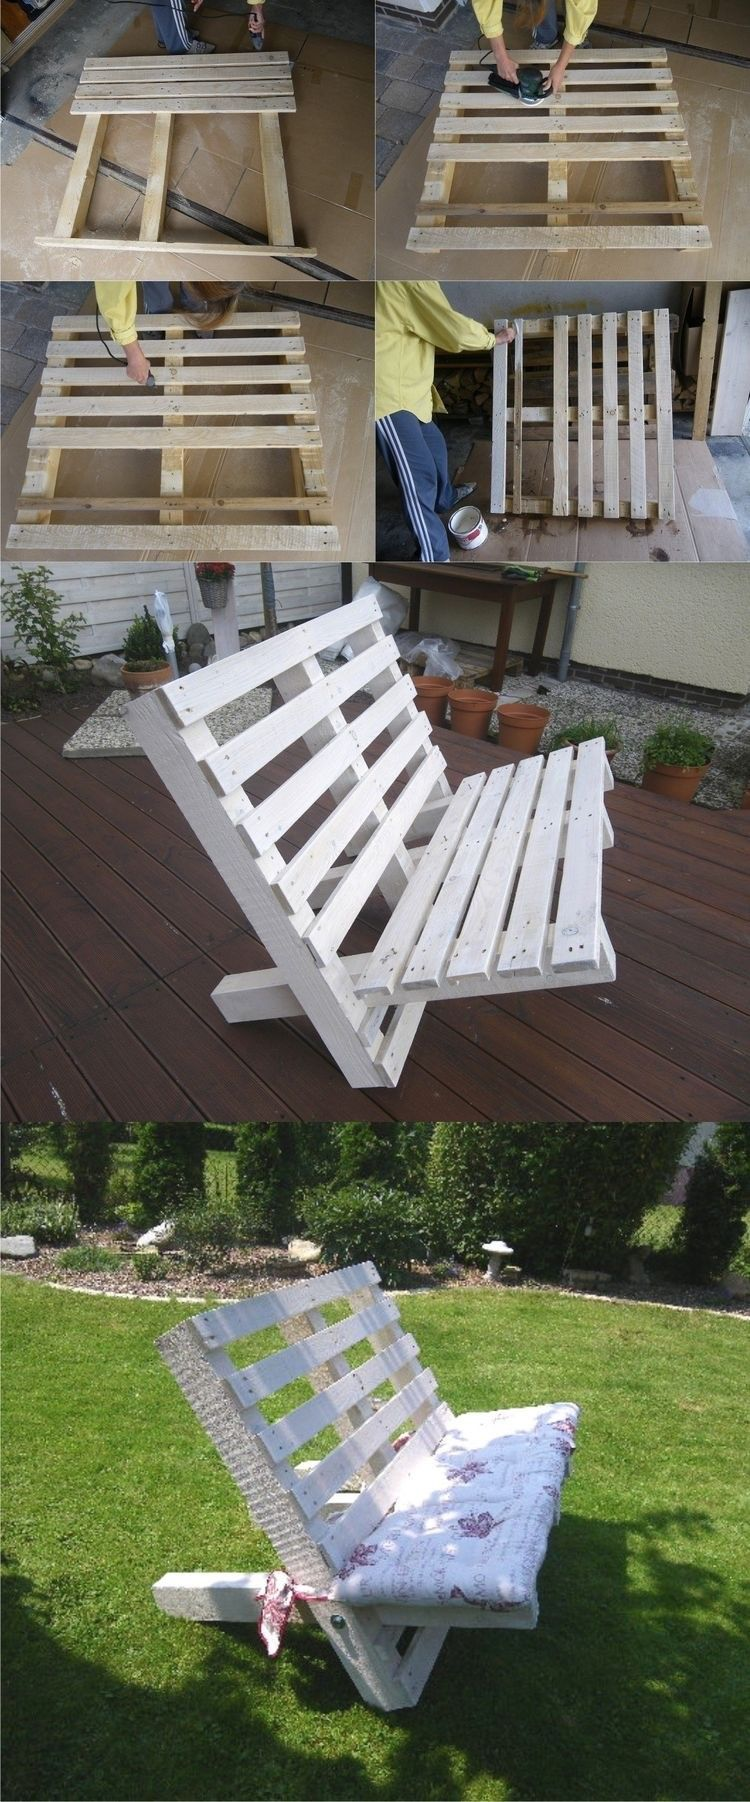 Incredible Things To Make With Old Wooden Pallets Wood Crafts Lamtechconsult Wood Chair Design Ideas Lamtechconsultcom